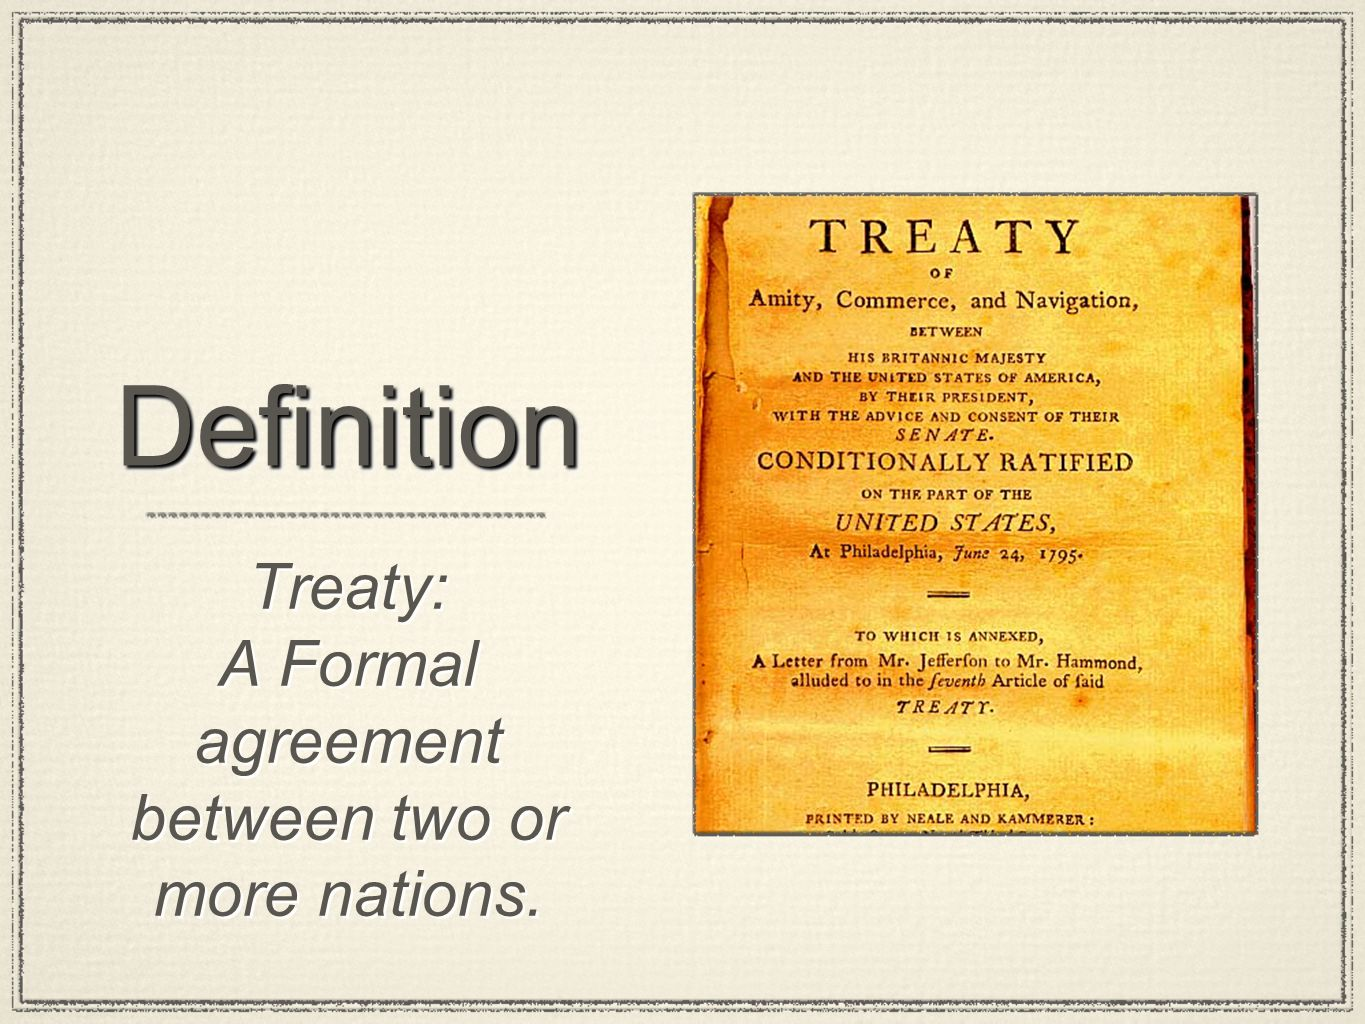 A Formal agreement between two or more nations.